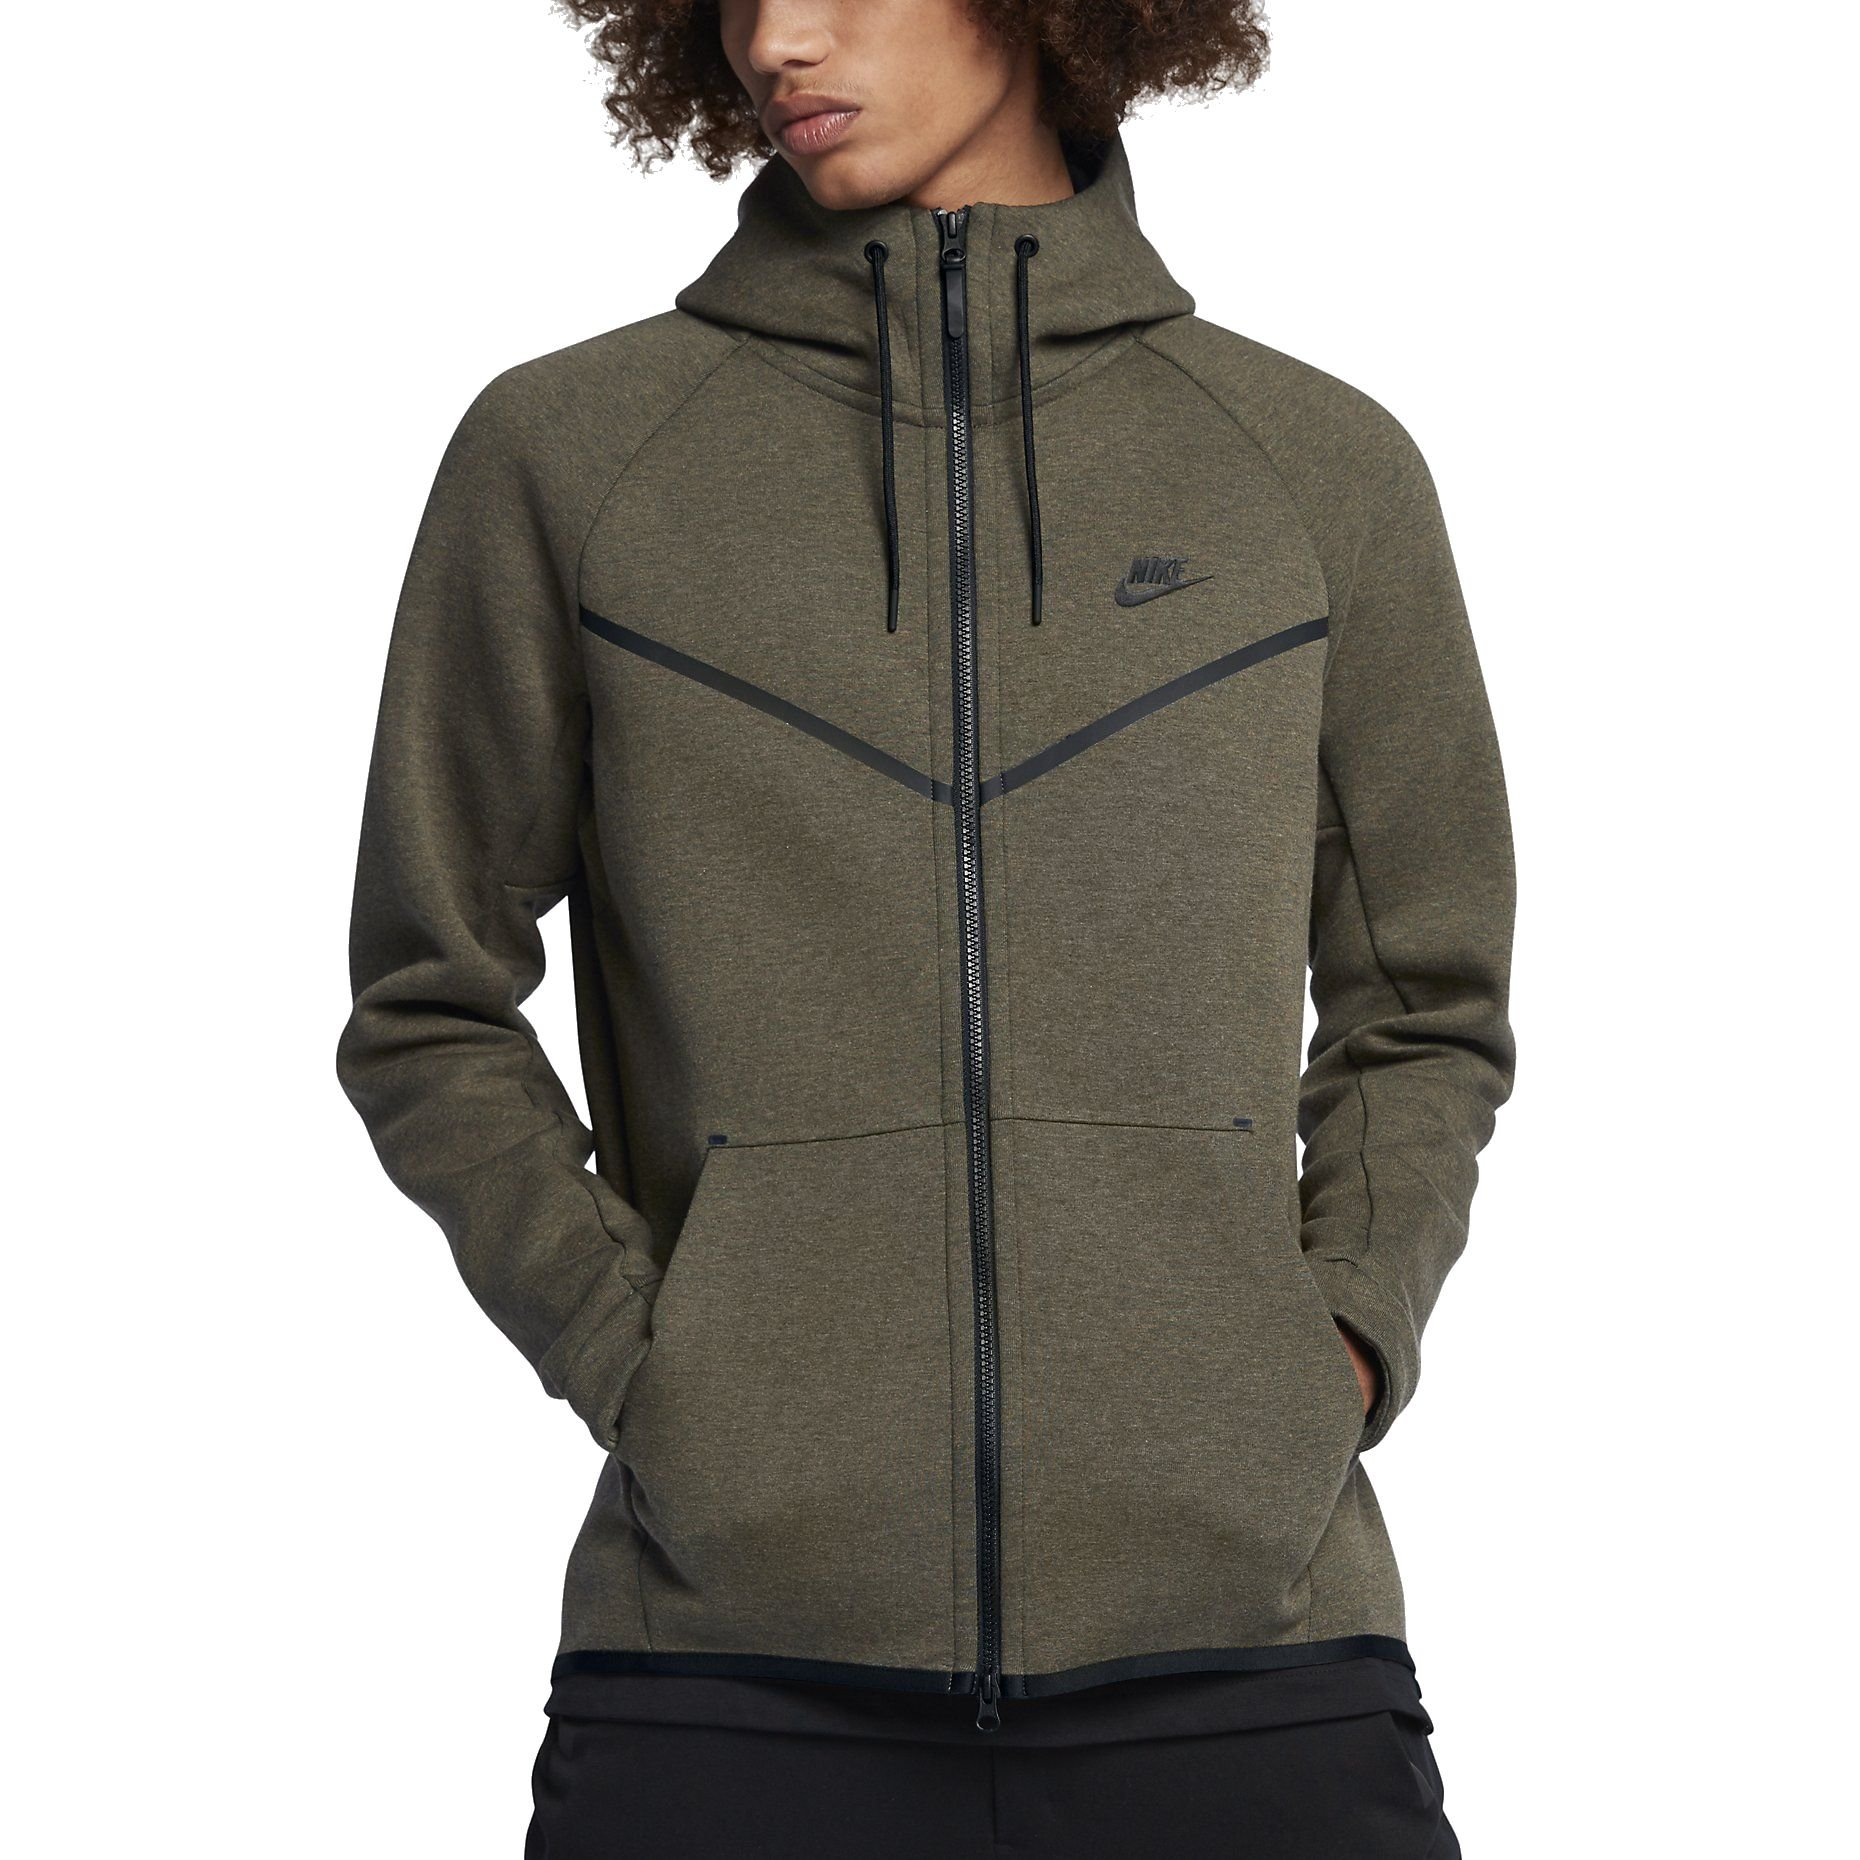 8ee0f12b38 Nike Mens Tech Fleece Hoodie Jacket Olive/Heather/Black (Large)